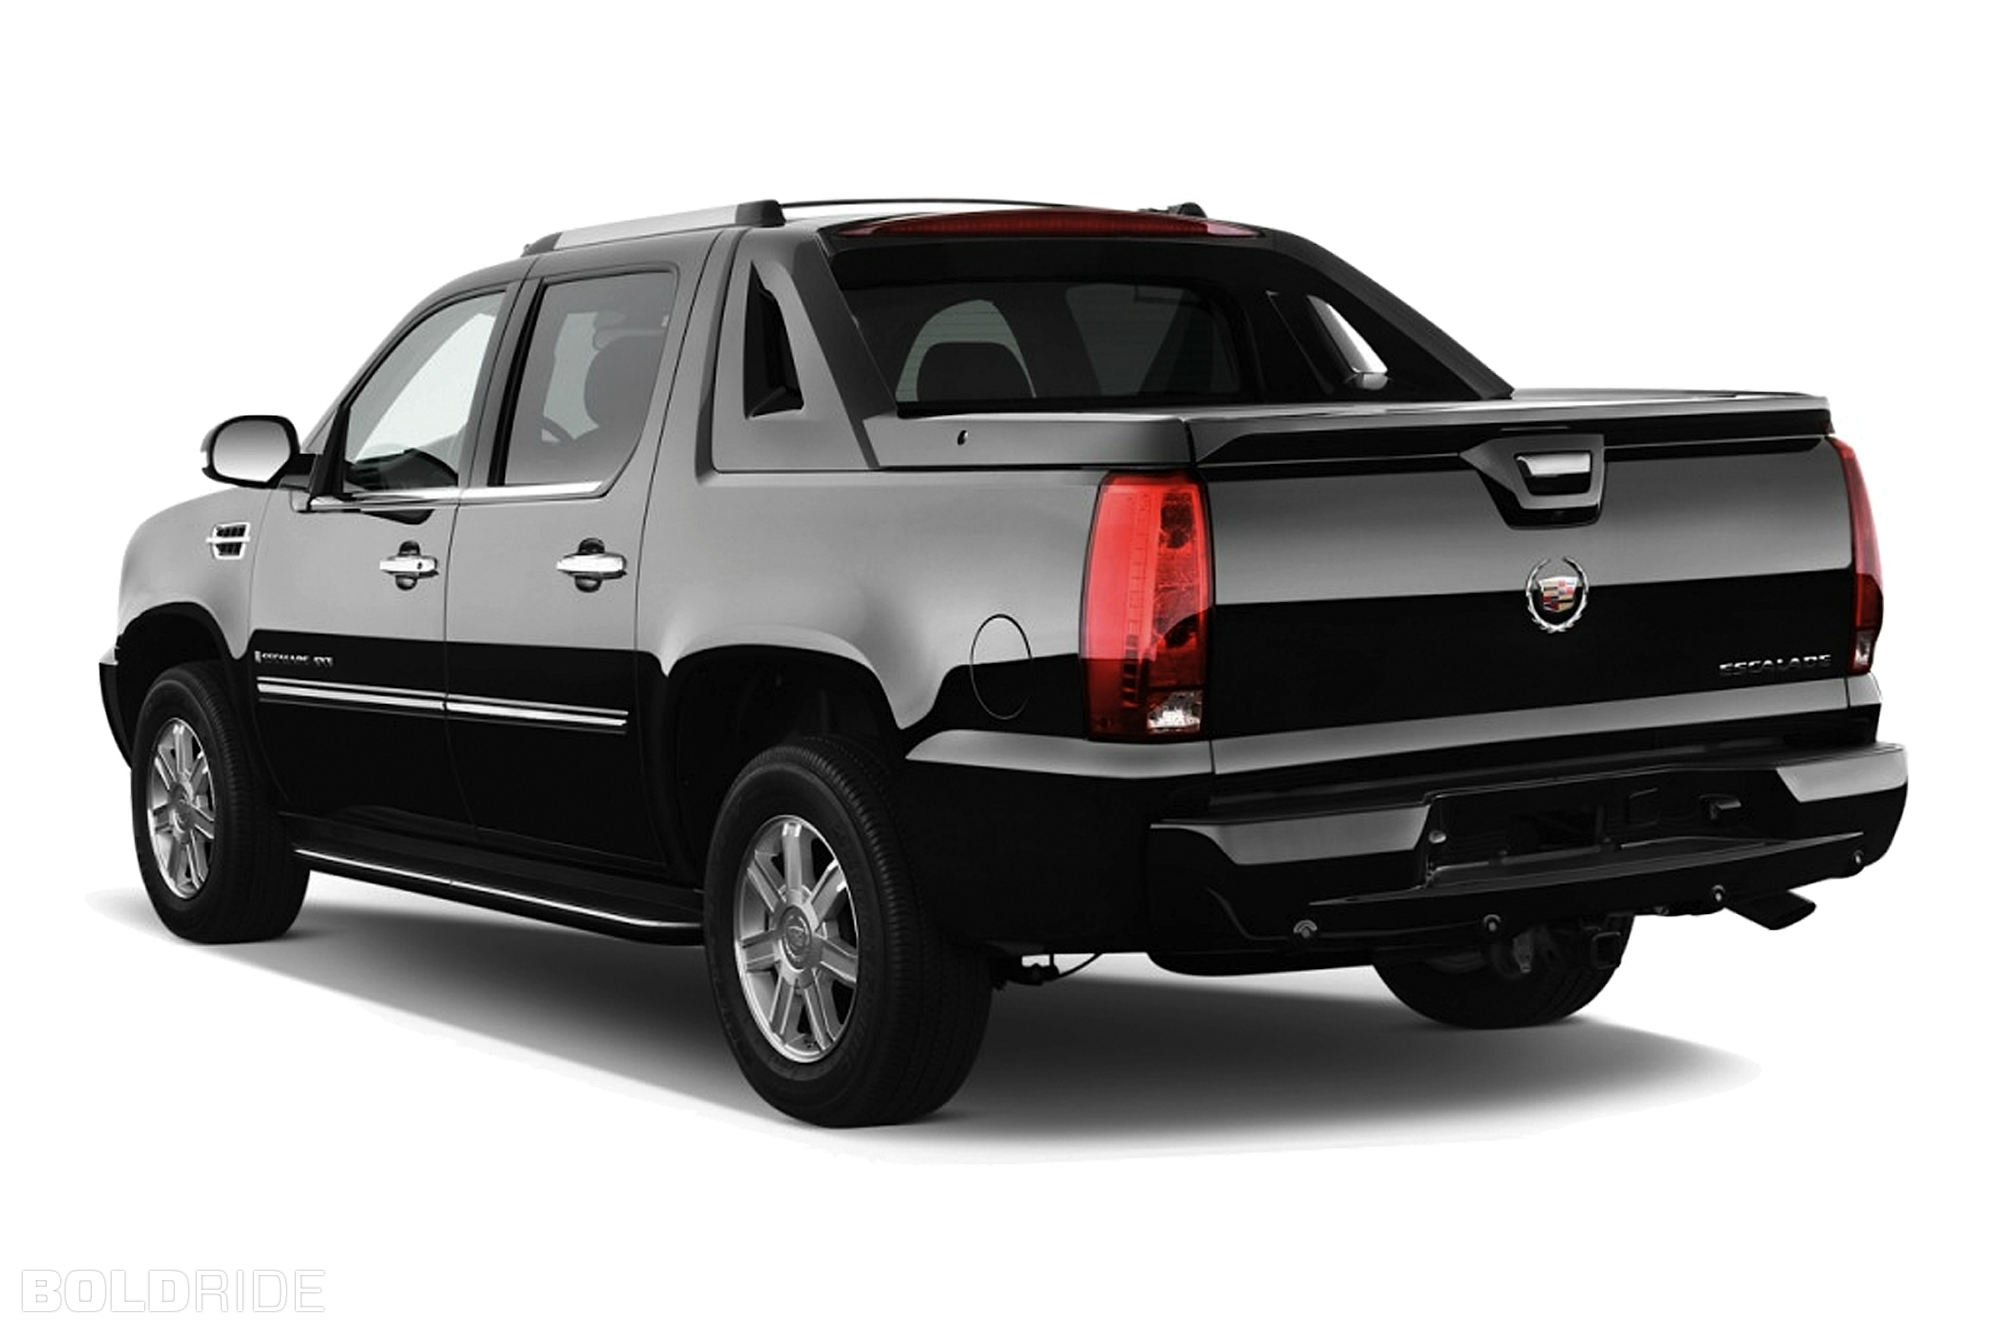 cadillac escalade truck 2014 wallpaper 2000x1333 5682. Cars Review. Best American Auto & Cars Review